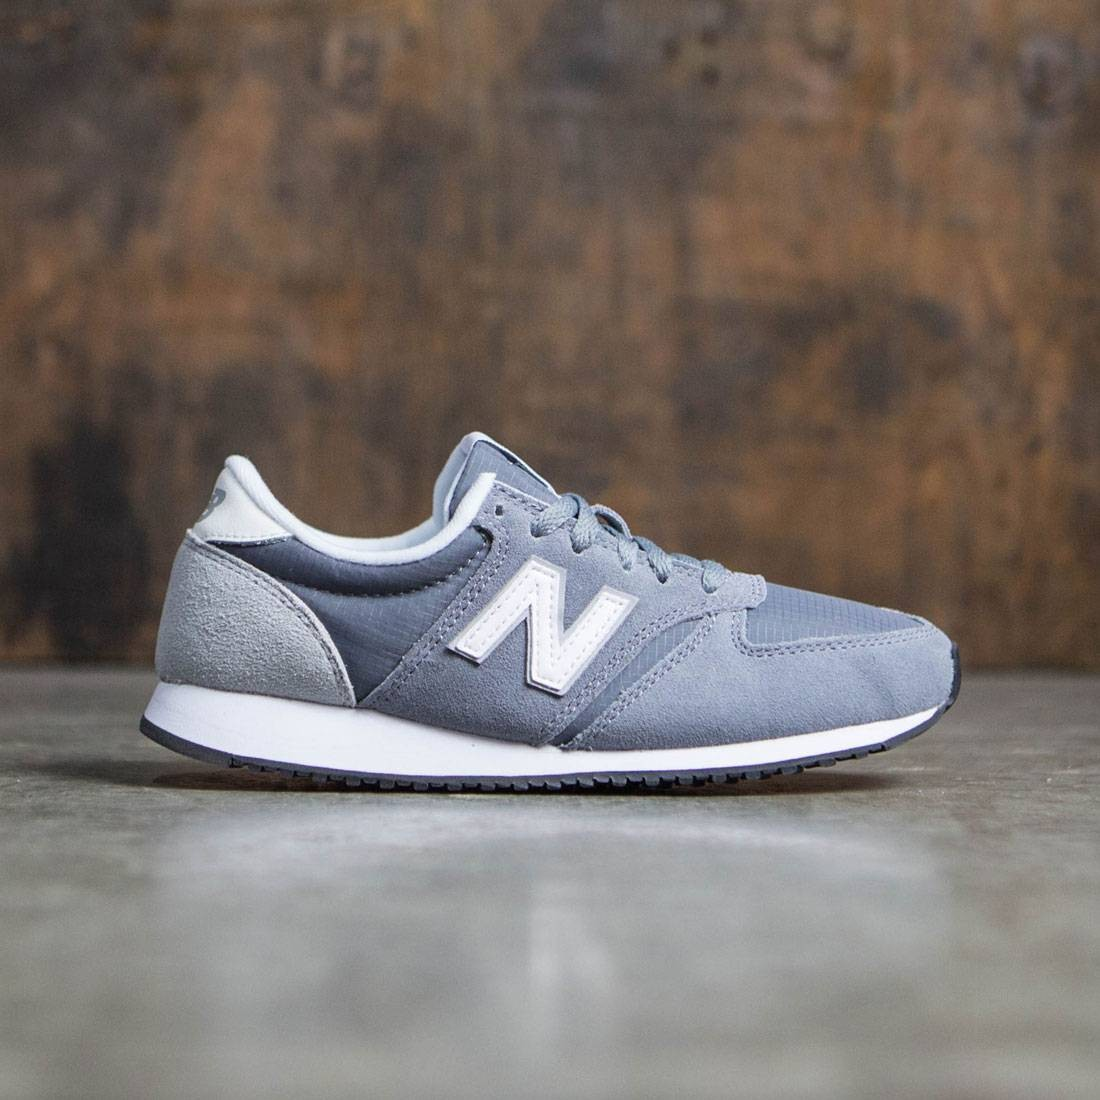 New Balance Black & Grey 420 Suede Trainers Schuh at